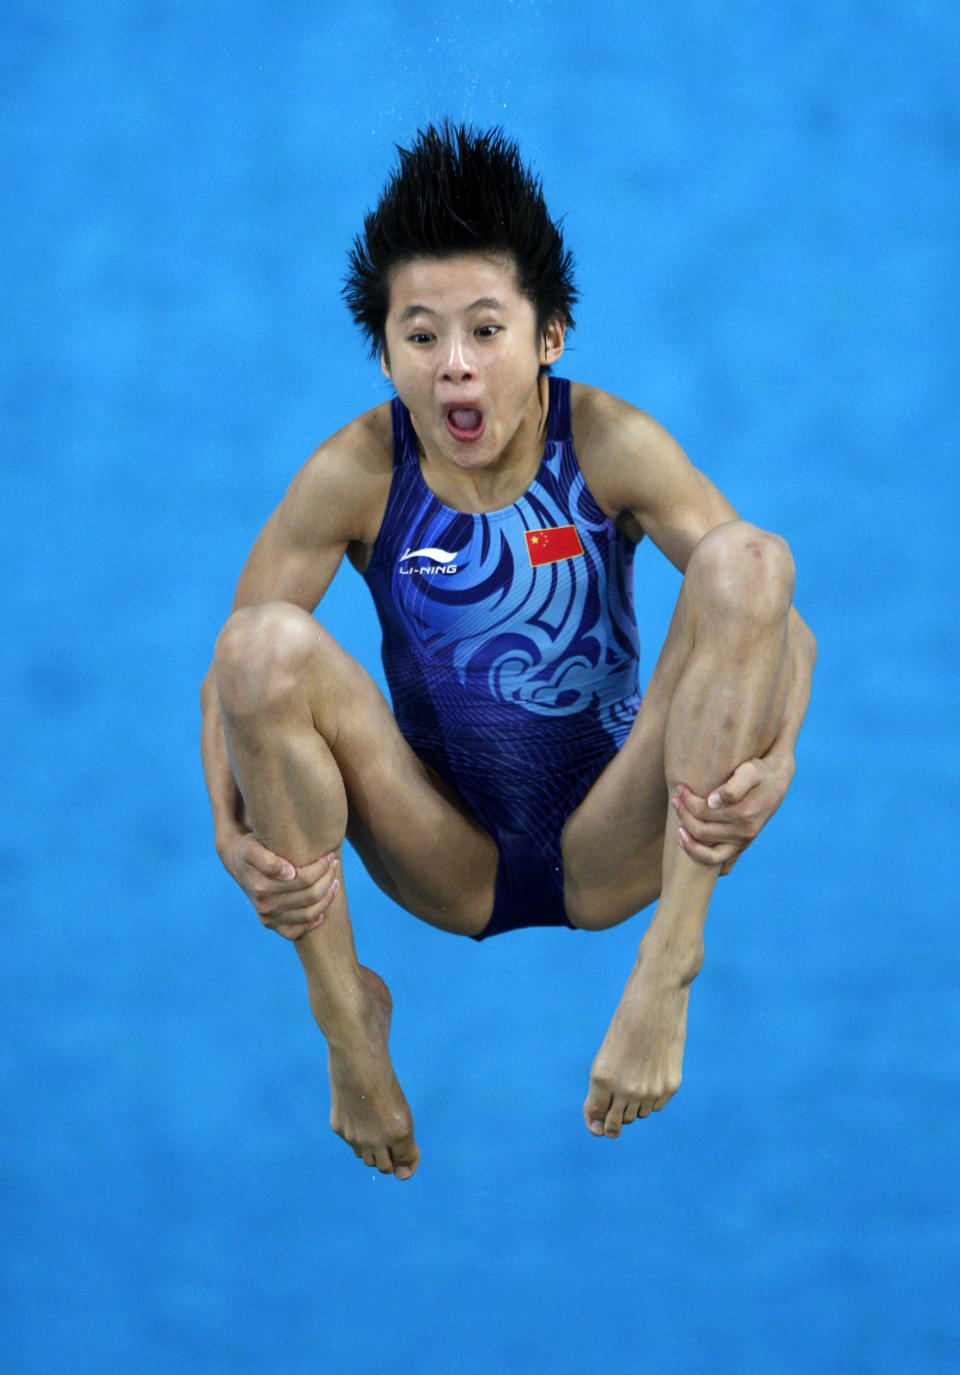 Wang Xin of China competes in the women's 10m platform diving preliminary round at the Beijing 2008 Olympic Games August 20, 2008. REUTERS/Jason Reed (CHINA)